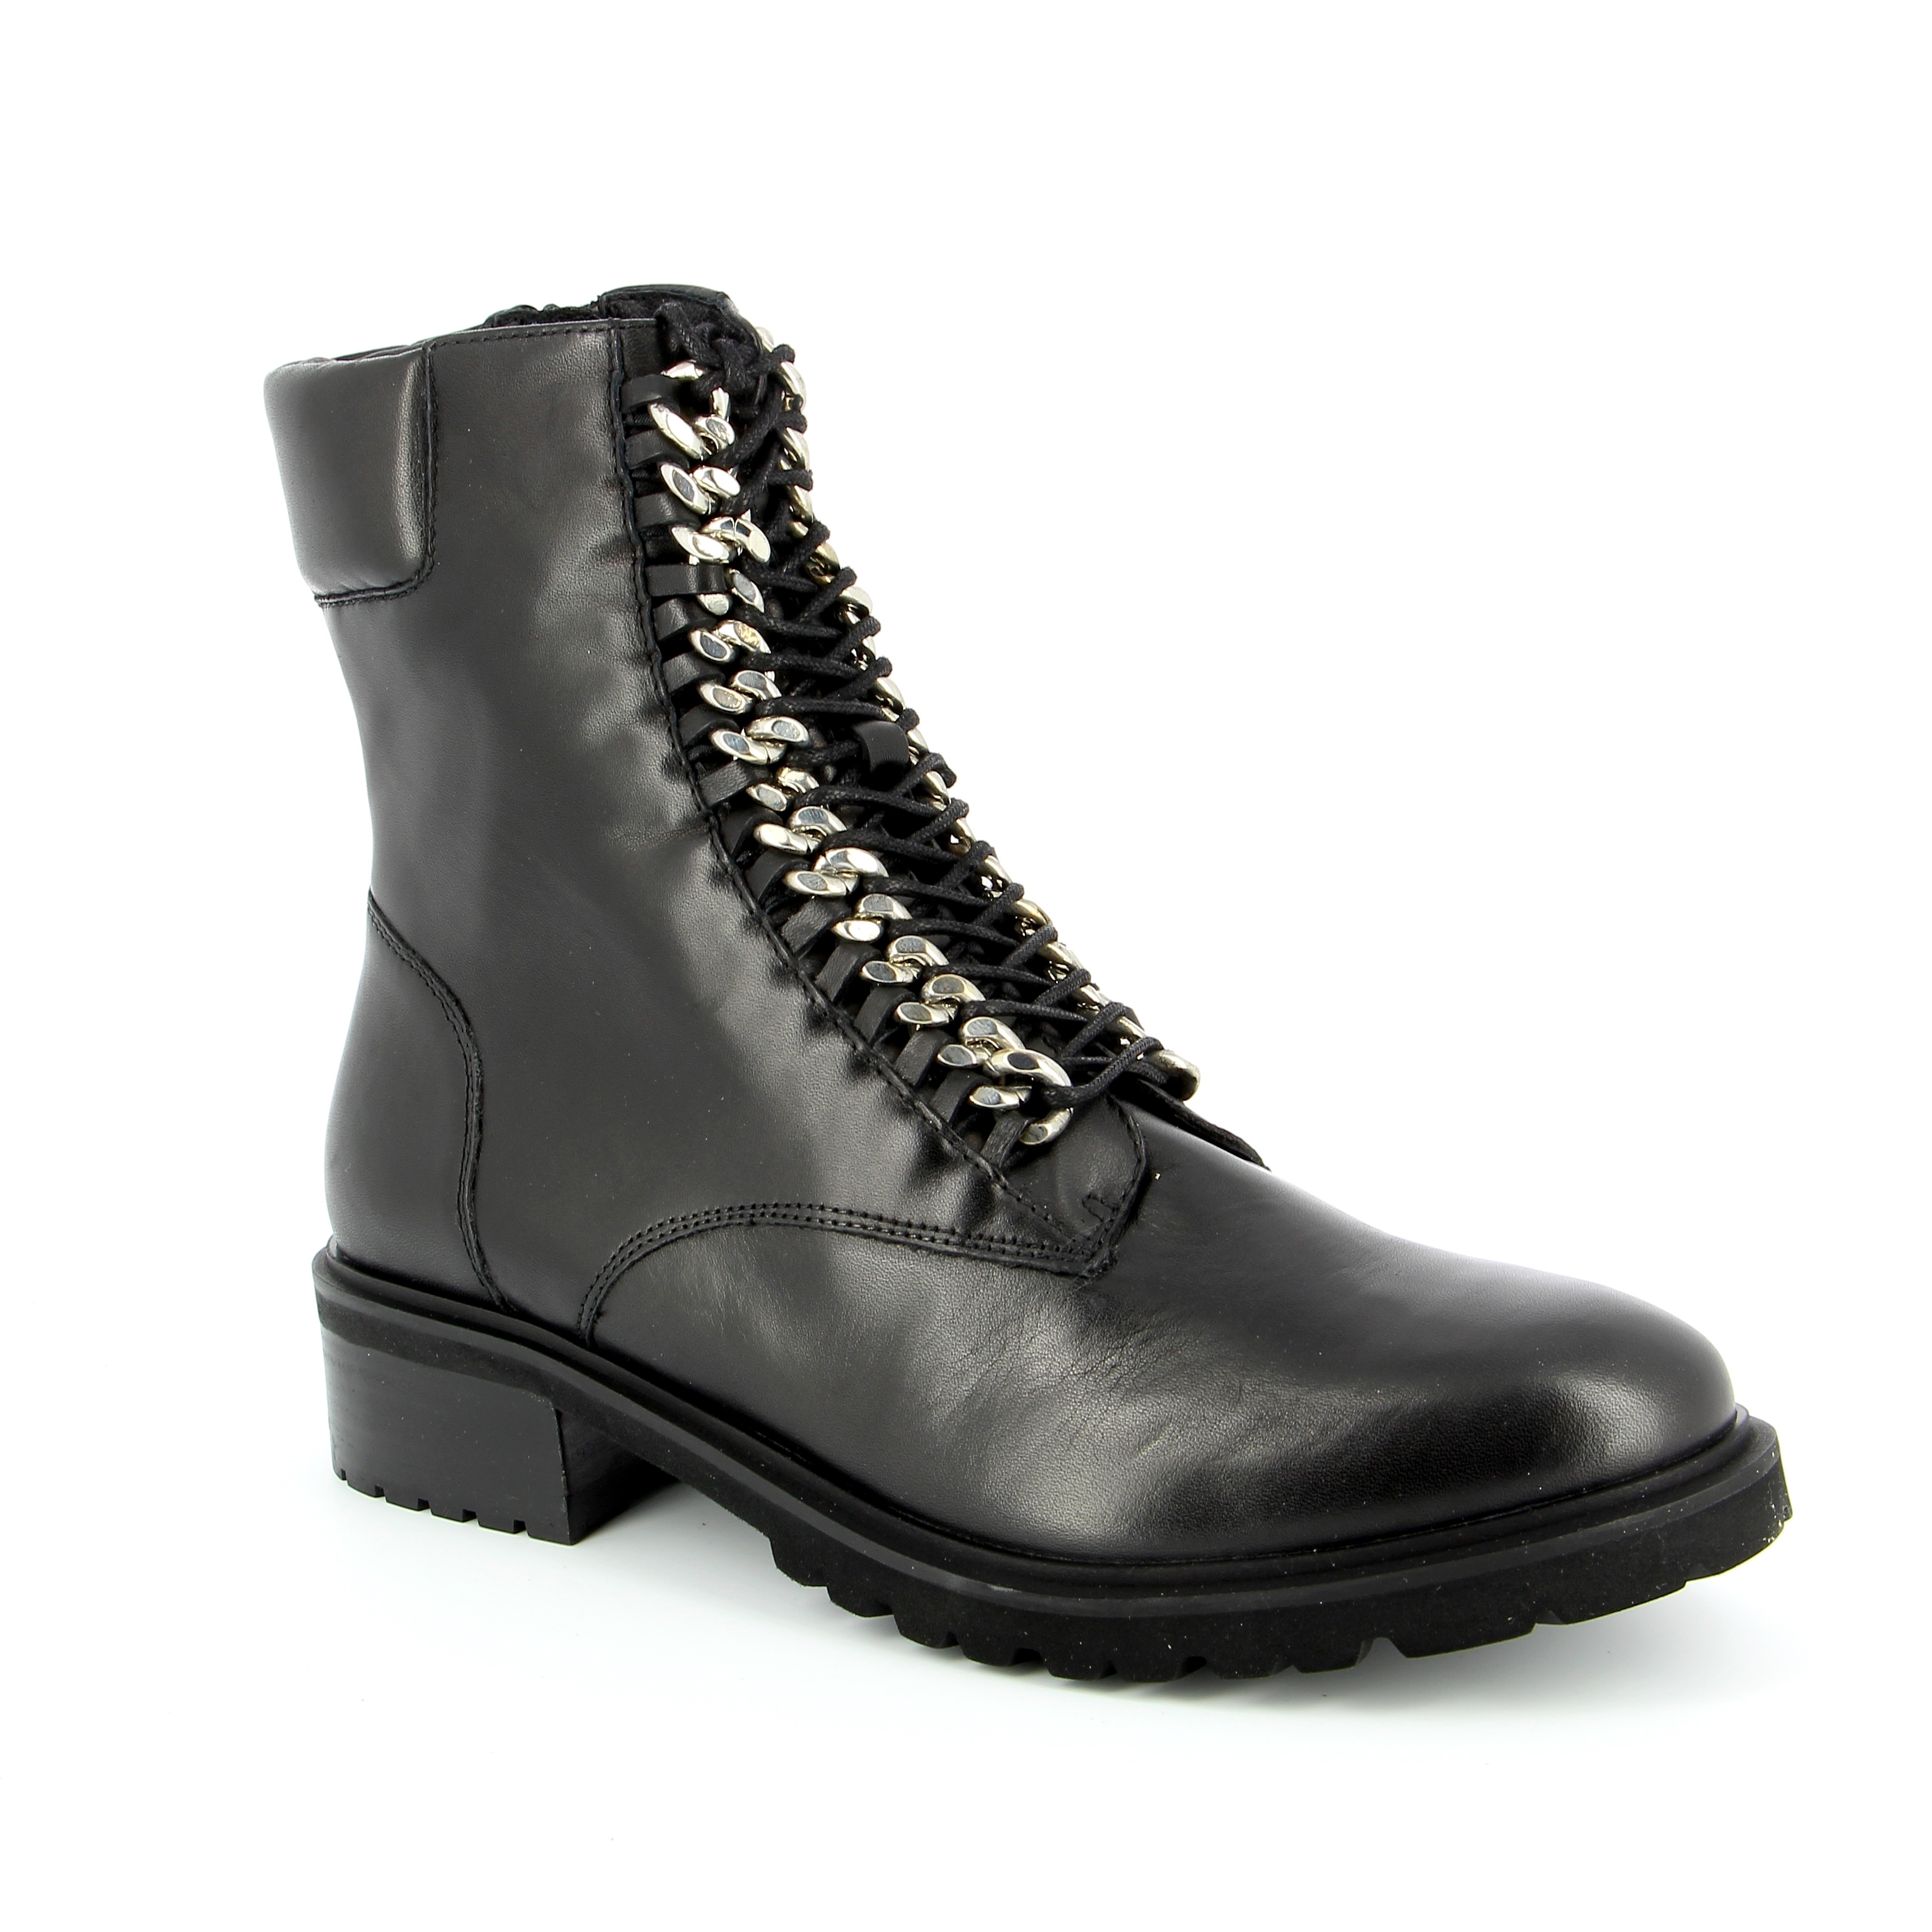 Spm Bottines noir